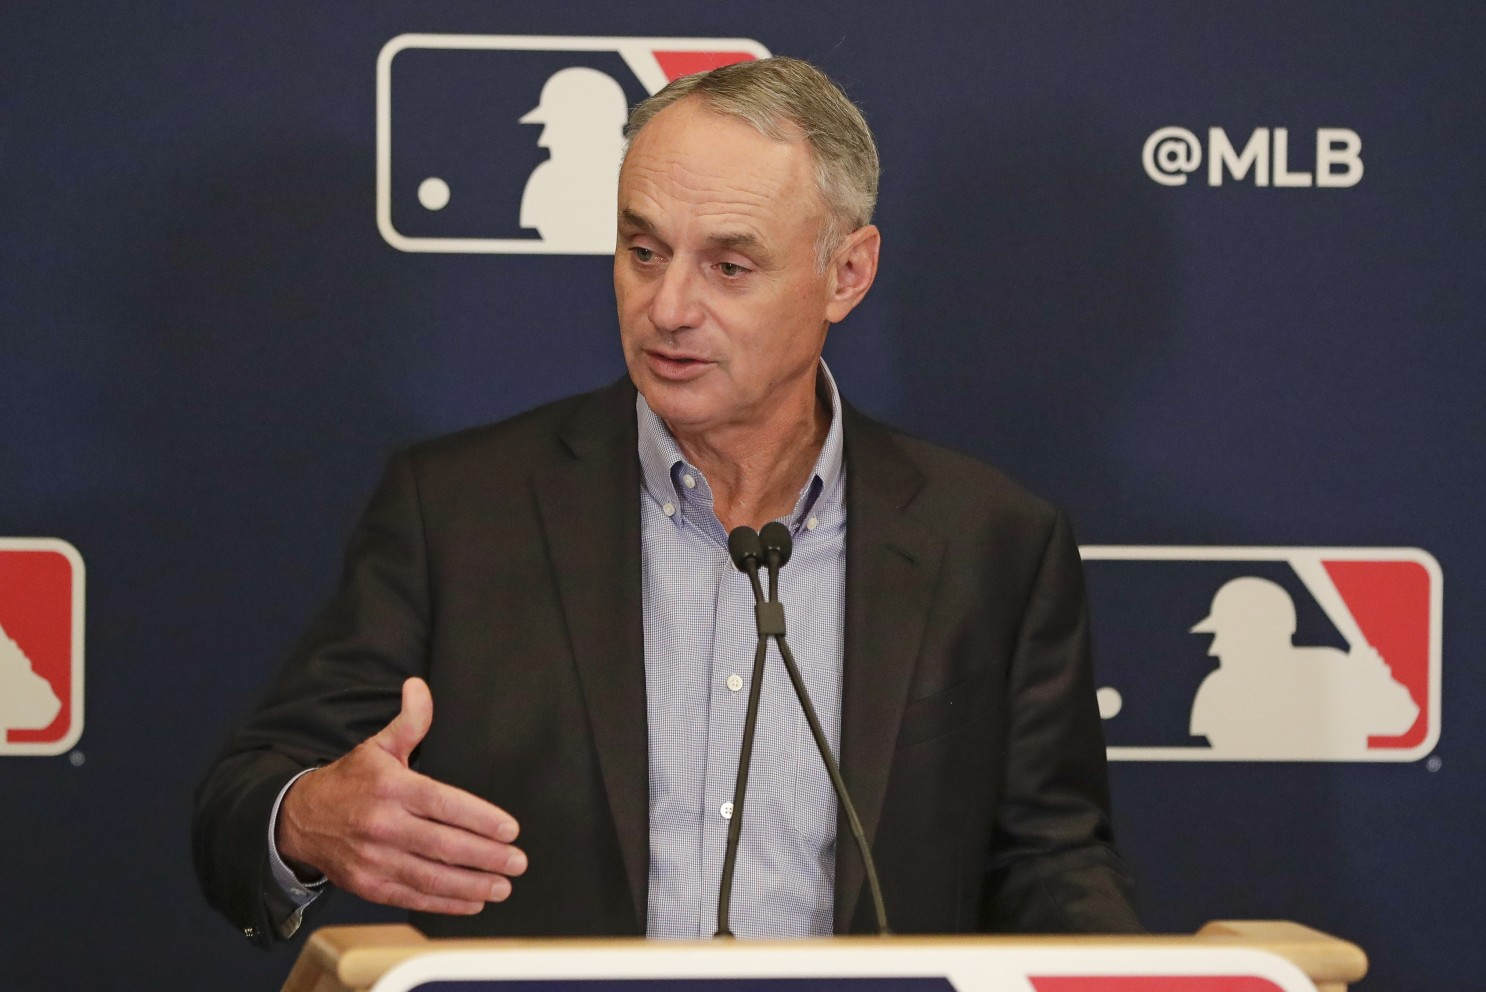 Rob Manfred, What Are You Doing?